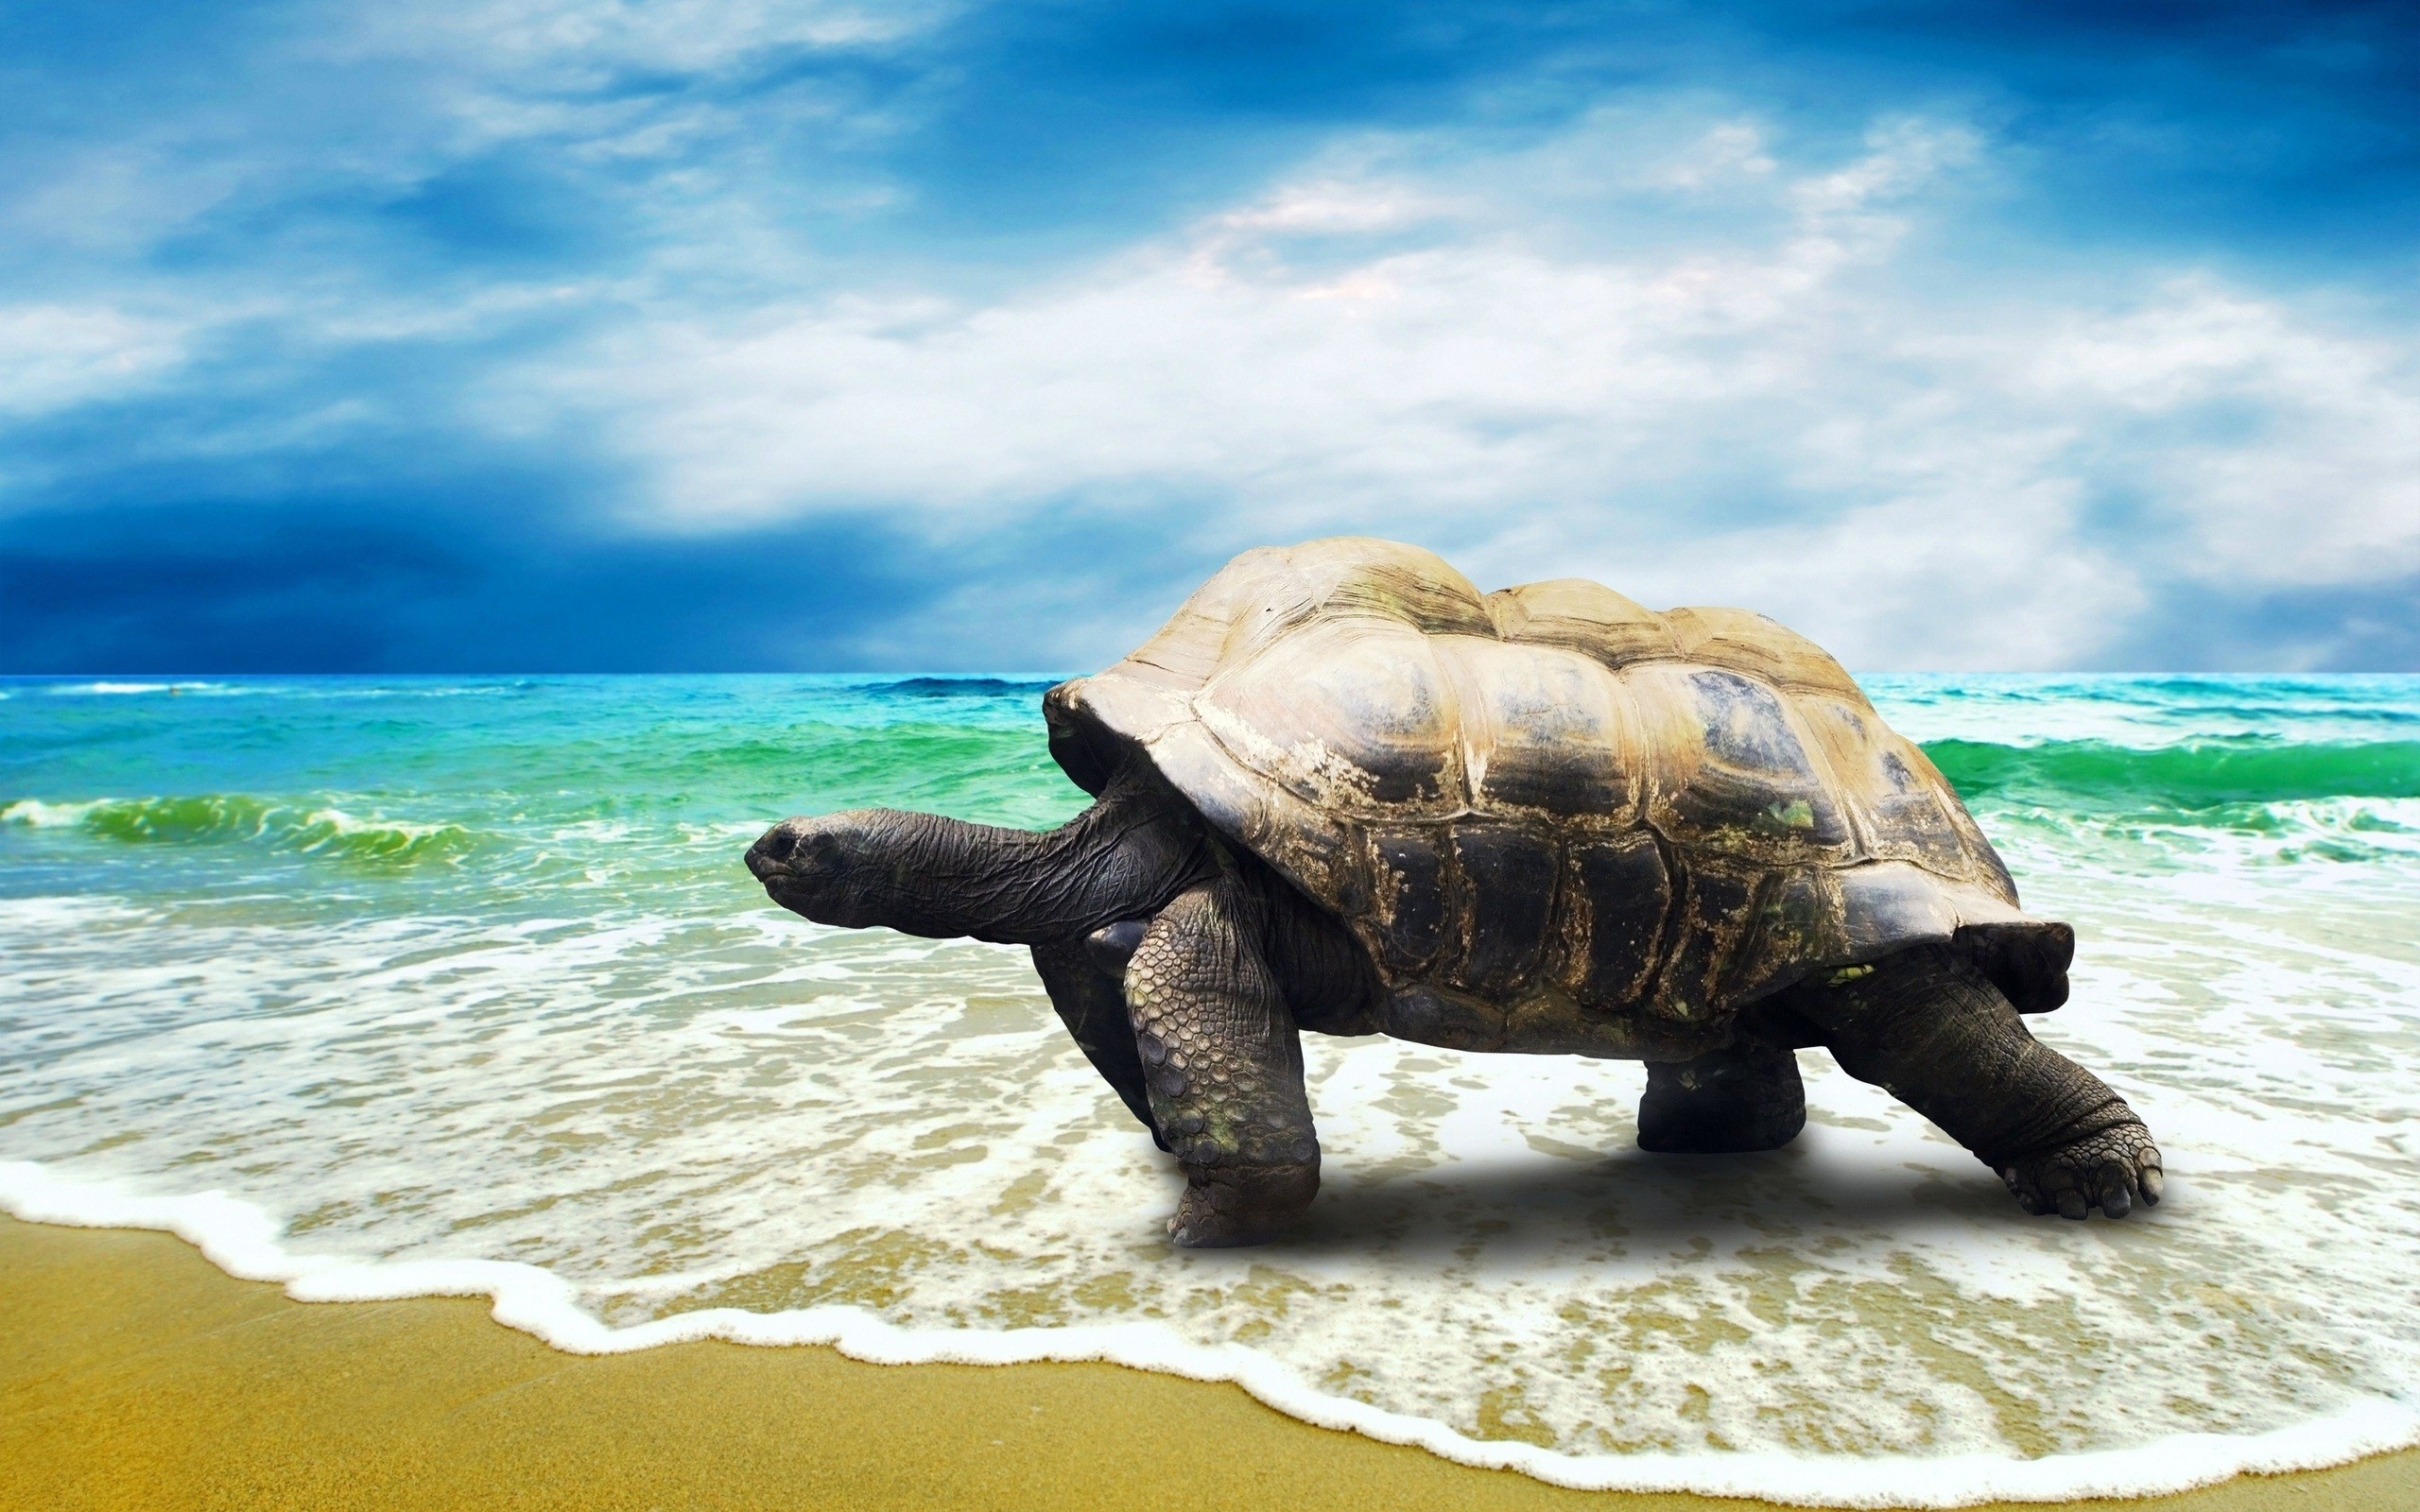 Baby Sea Turtle Wallpaper (55+ images)